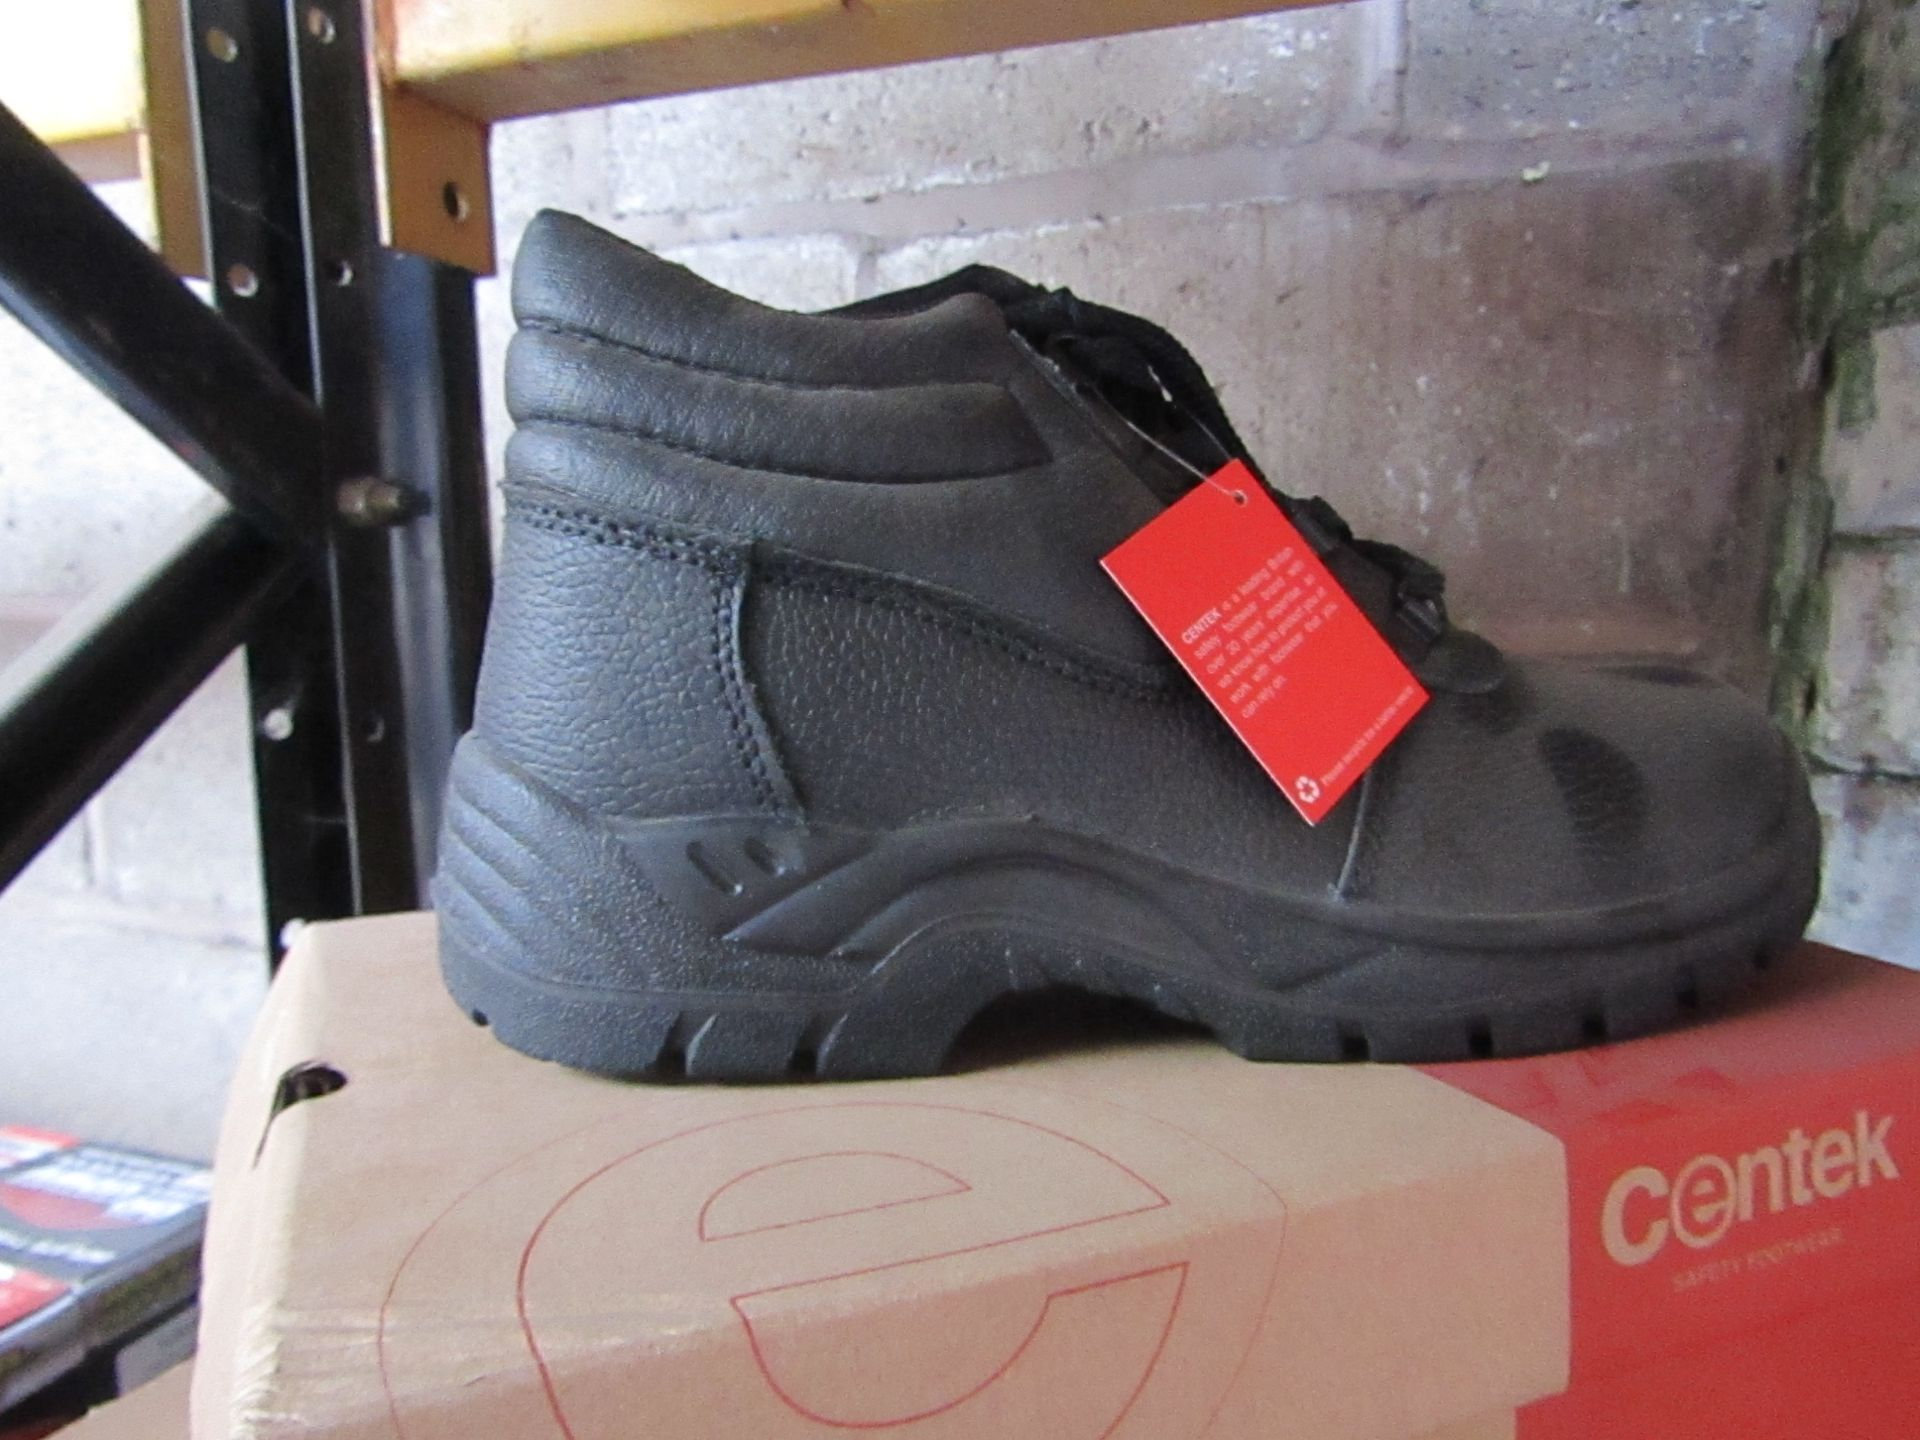 Lot 83 - Centek - Black Steel Toe Cap Boot - Size 9 - New & Boxed.